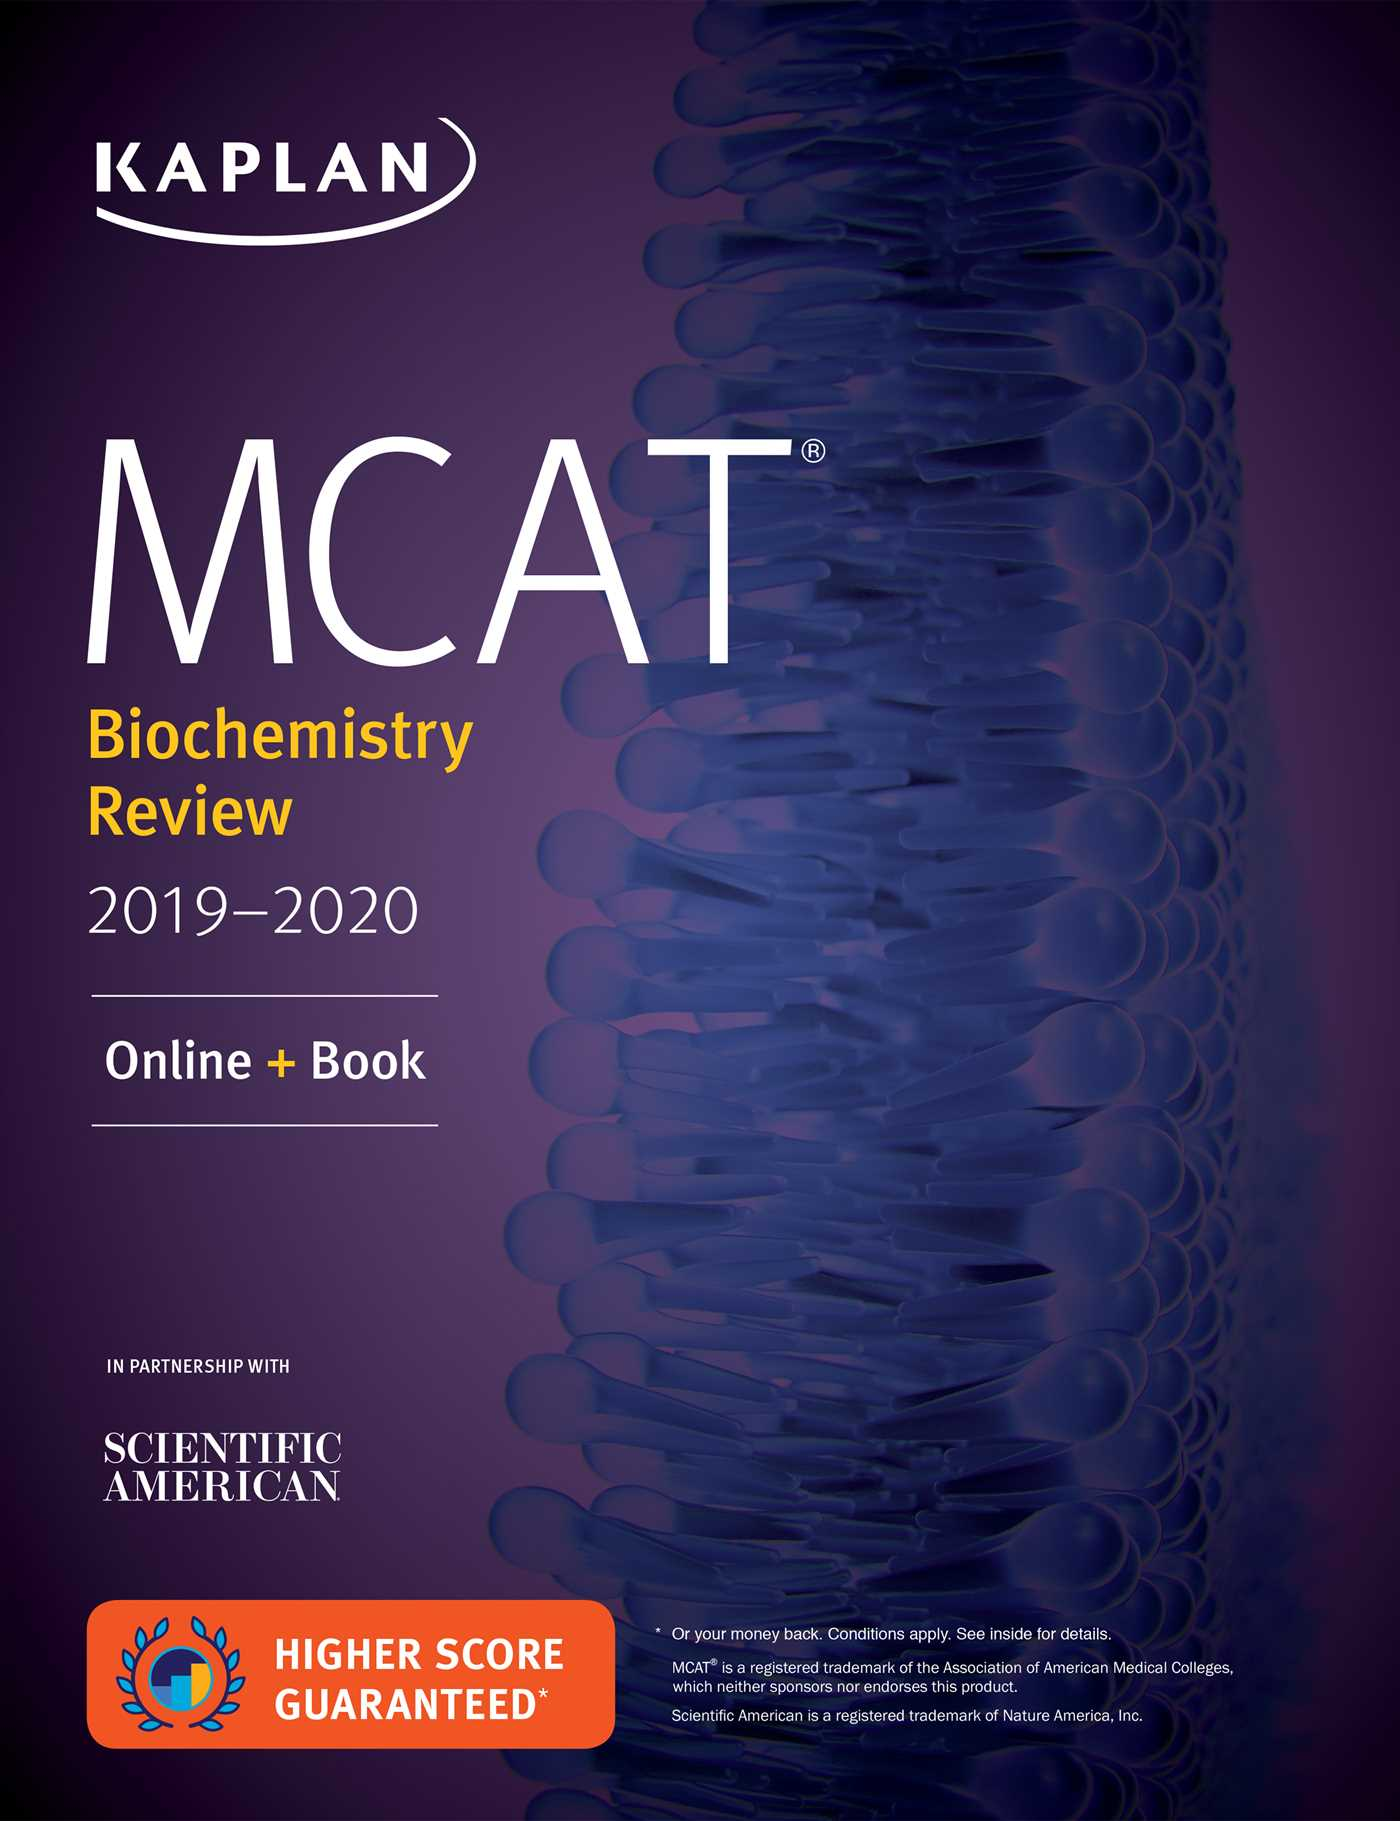 Book Cover Image (jpg): MCAT Biochemistry Review 2019-2020